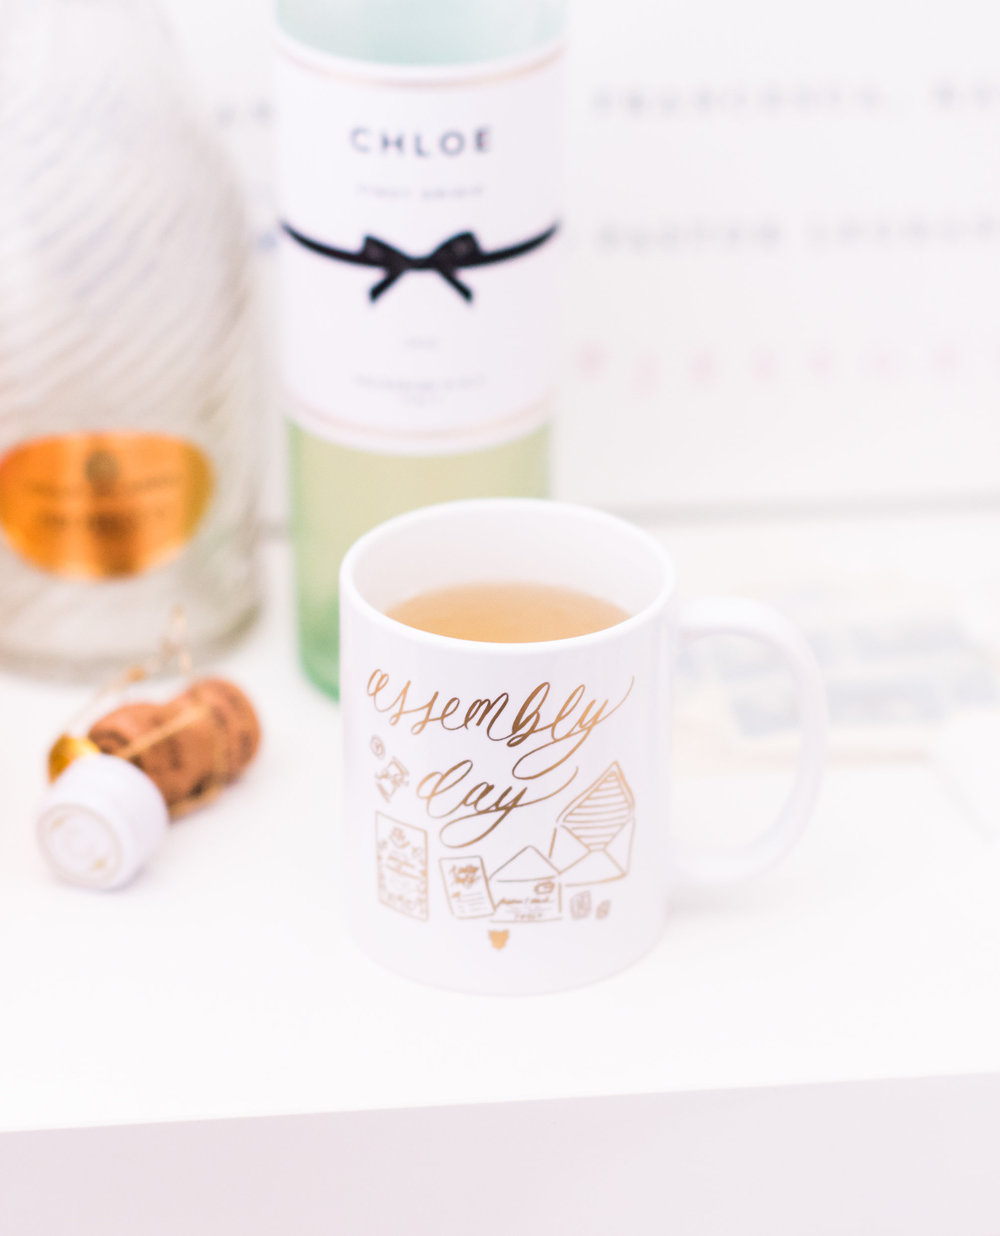 Assembly Day Gold Foil Mug by Simply Jessica Marie | Callie Lindsey Photography